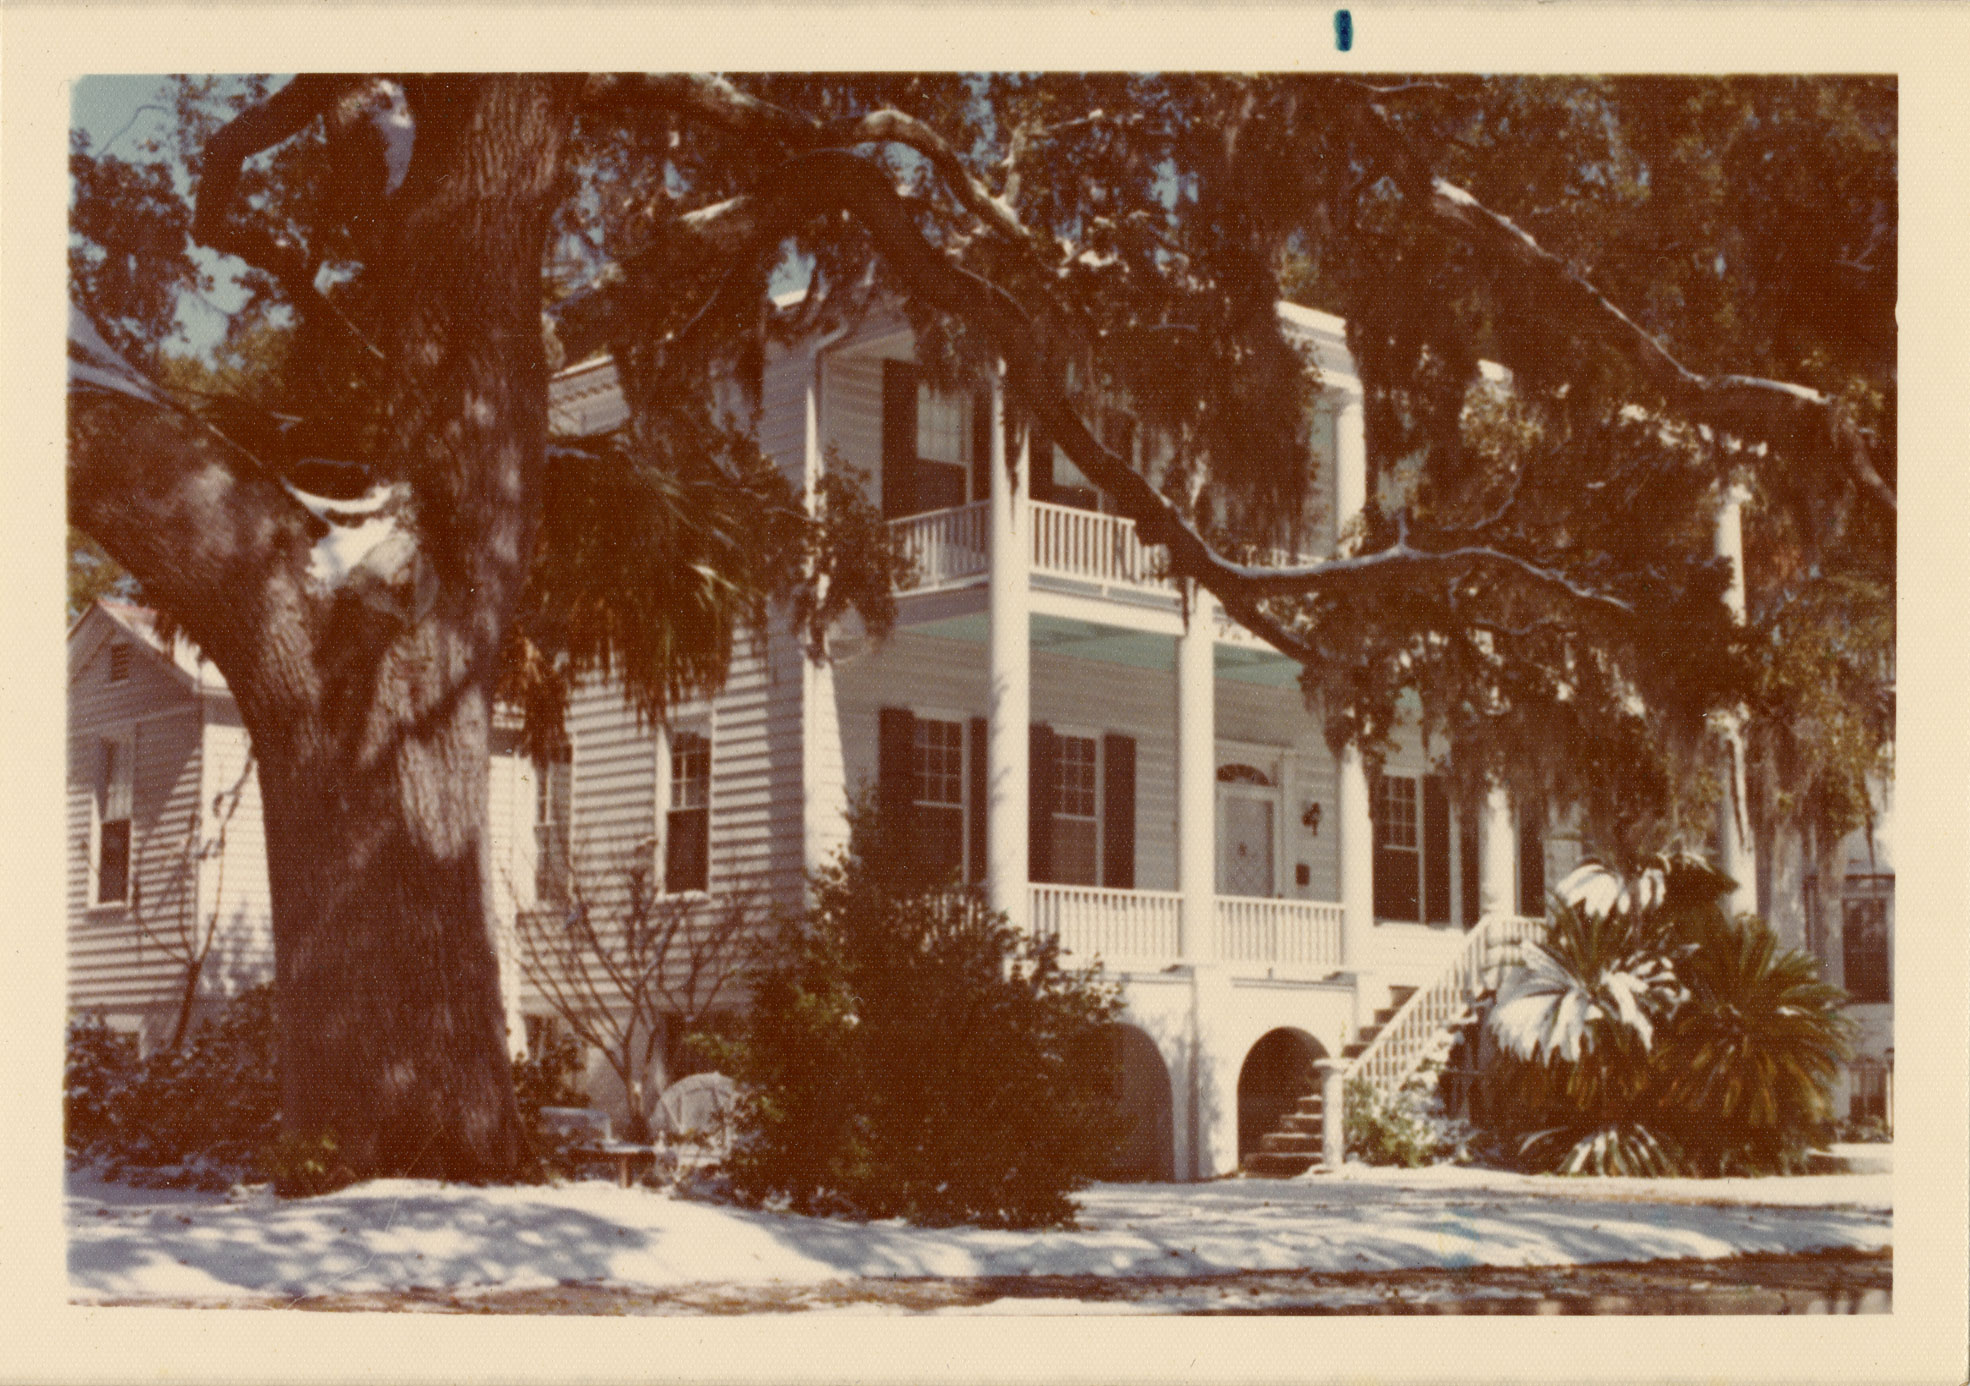 Robert Means House in snow